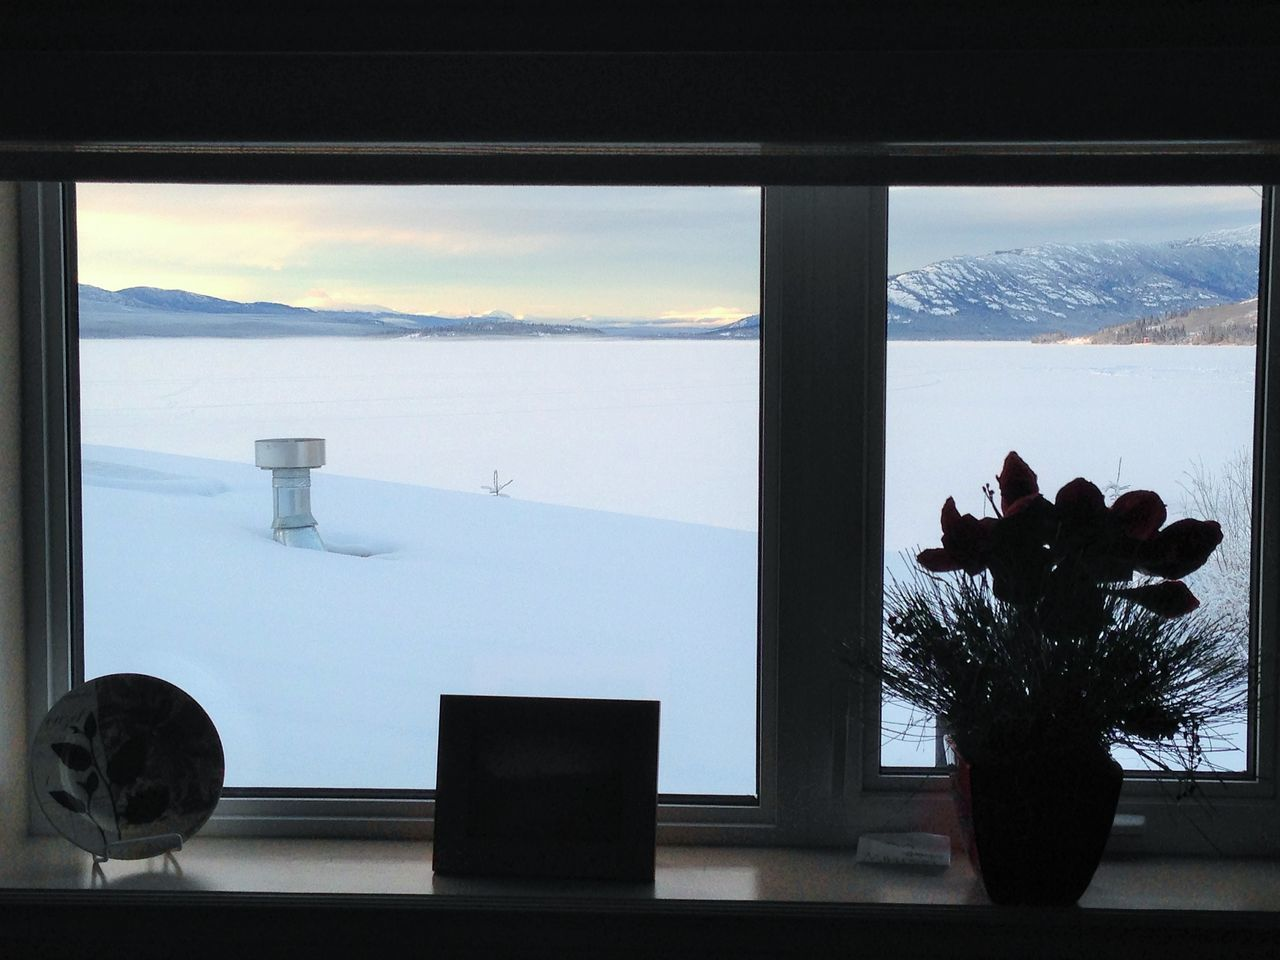 Potted Plant On Window Sill Against Snowcapped Landscape